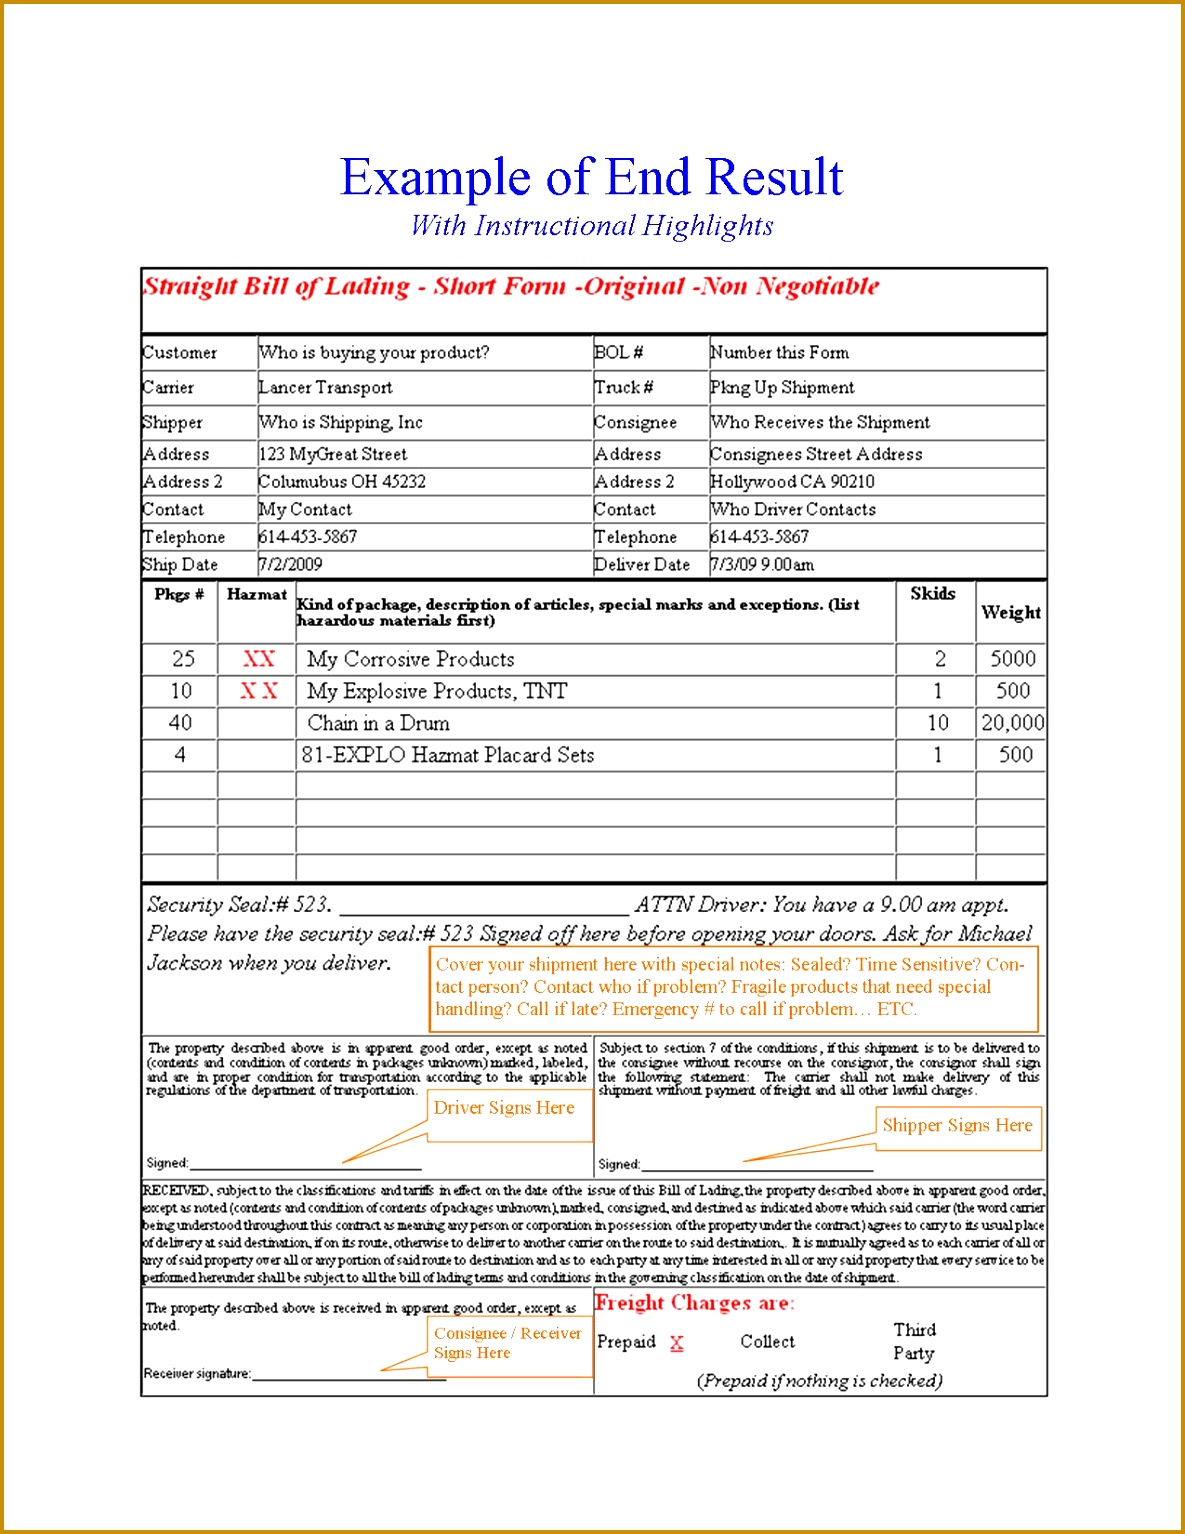 Example Bill of Lading Results 15341185